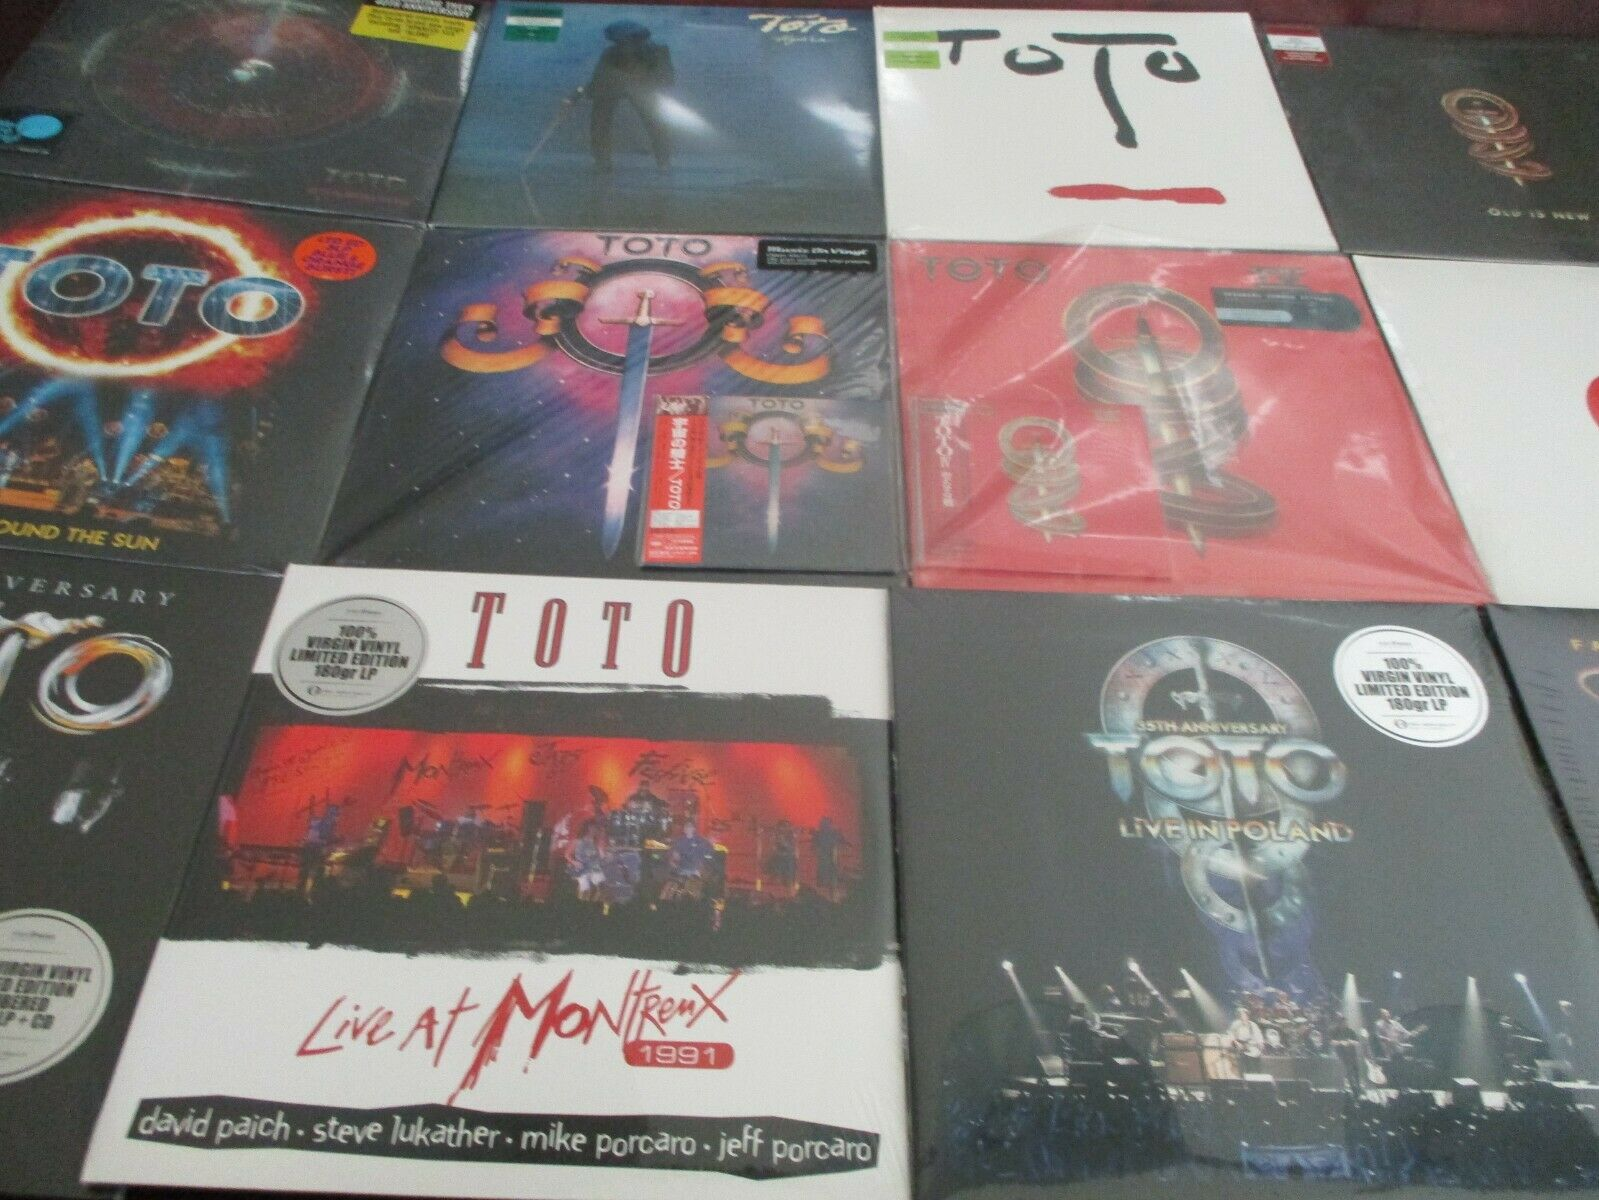 TOTO S/T & Iv Analog S 180 Gram Lps+Replica Japan Cds + Toto Vix + ...